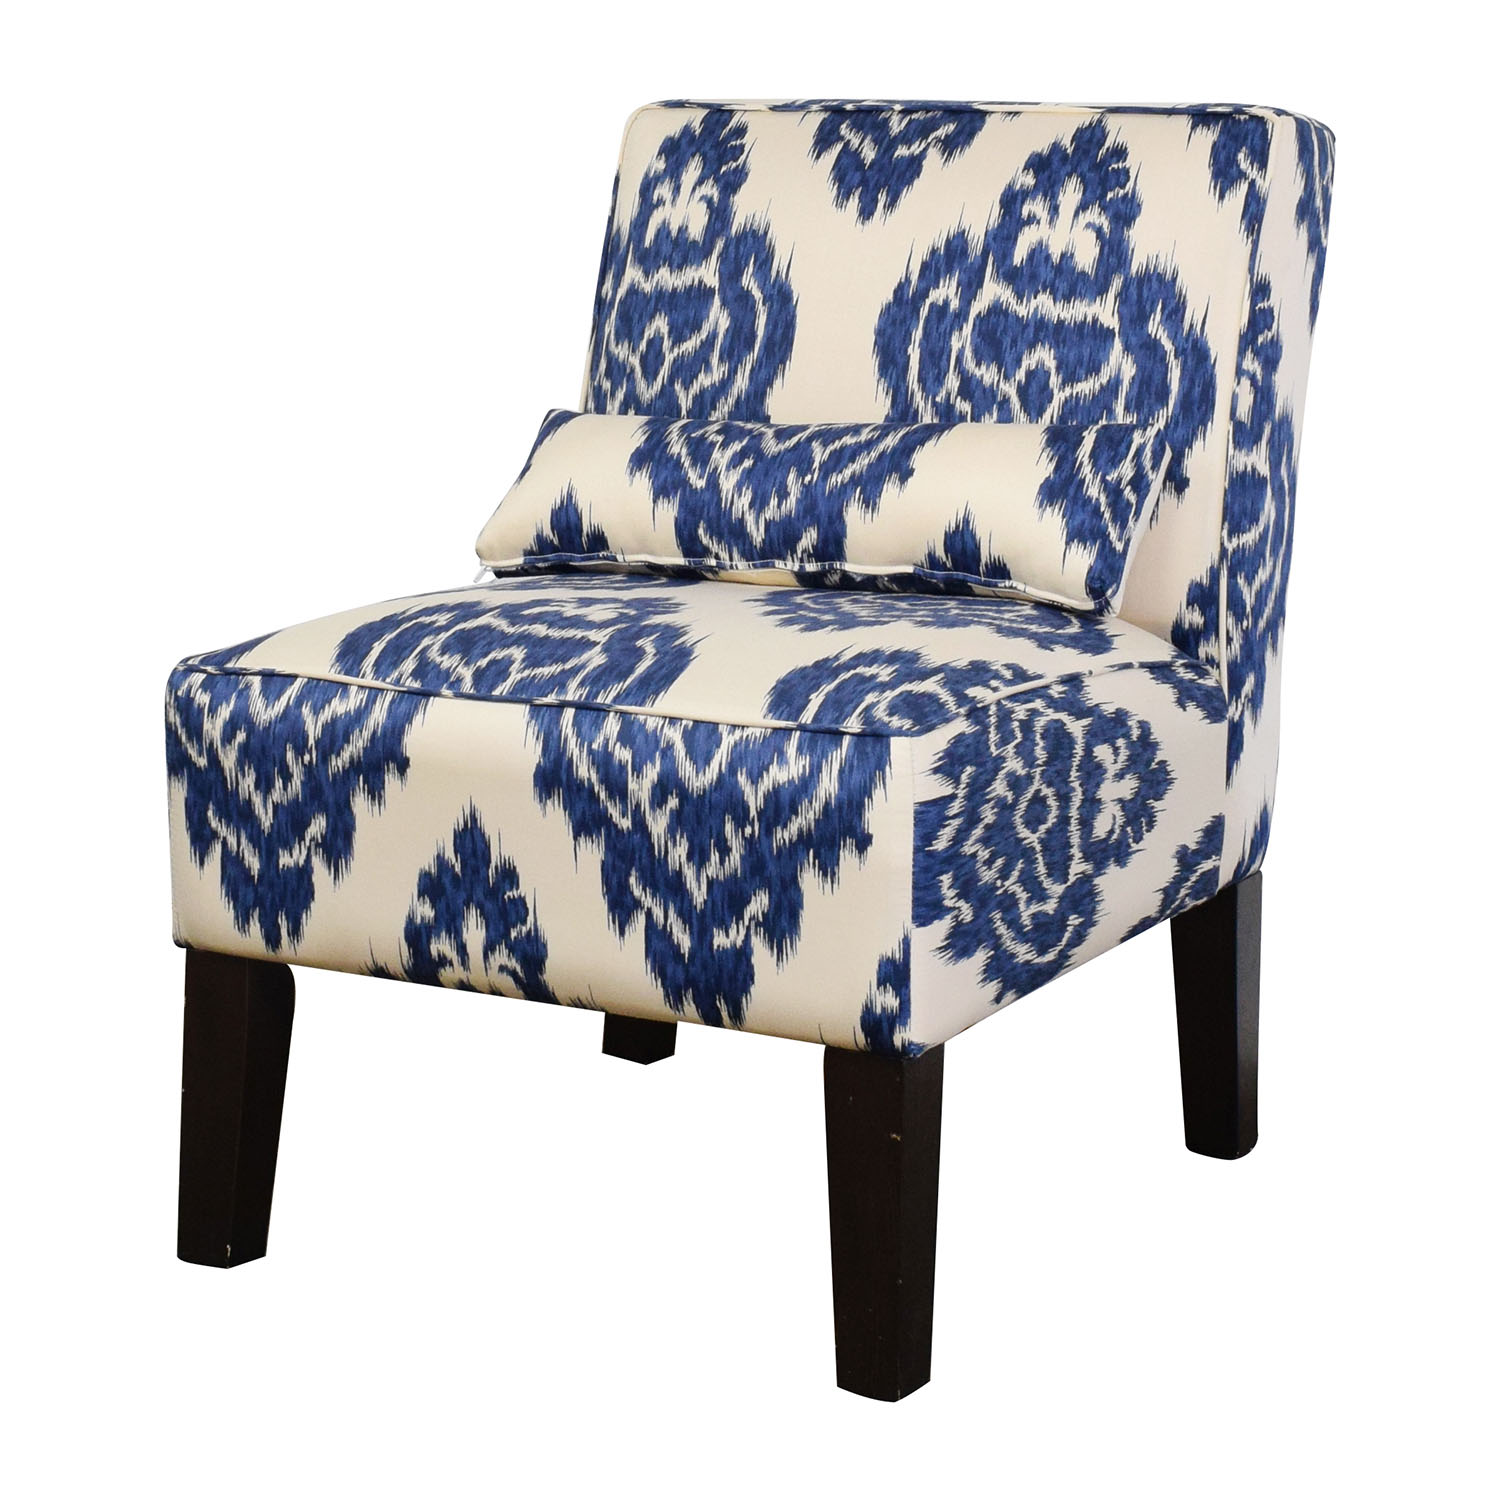 Super 52 Off Overstock Overstock Blue And White Accent Chair Chairs Machost Co Dining Chair Design Ideas Machostcouk